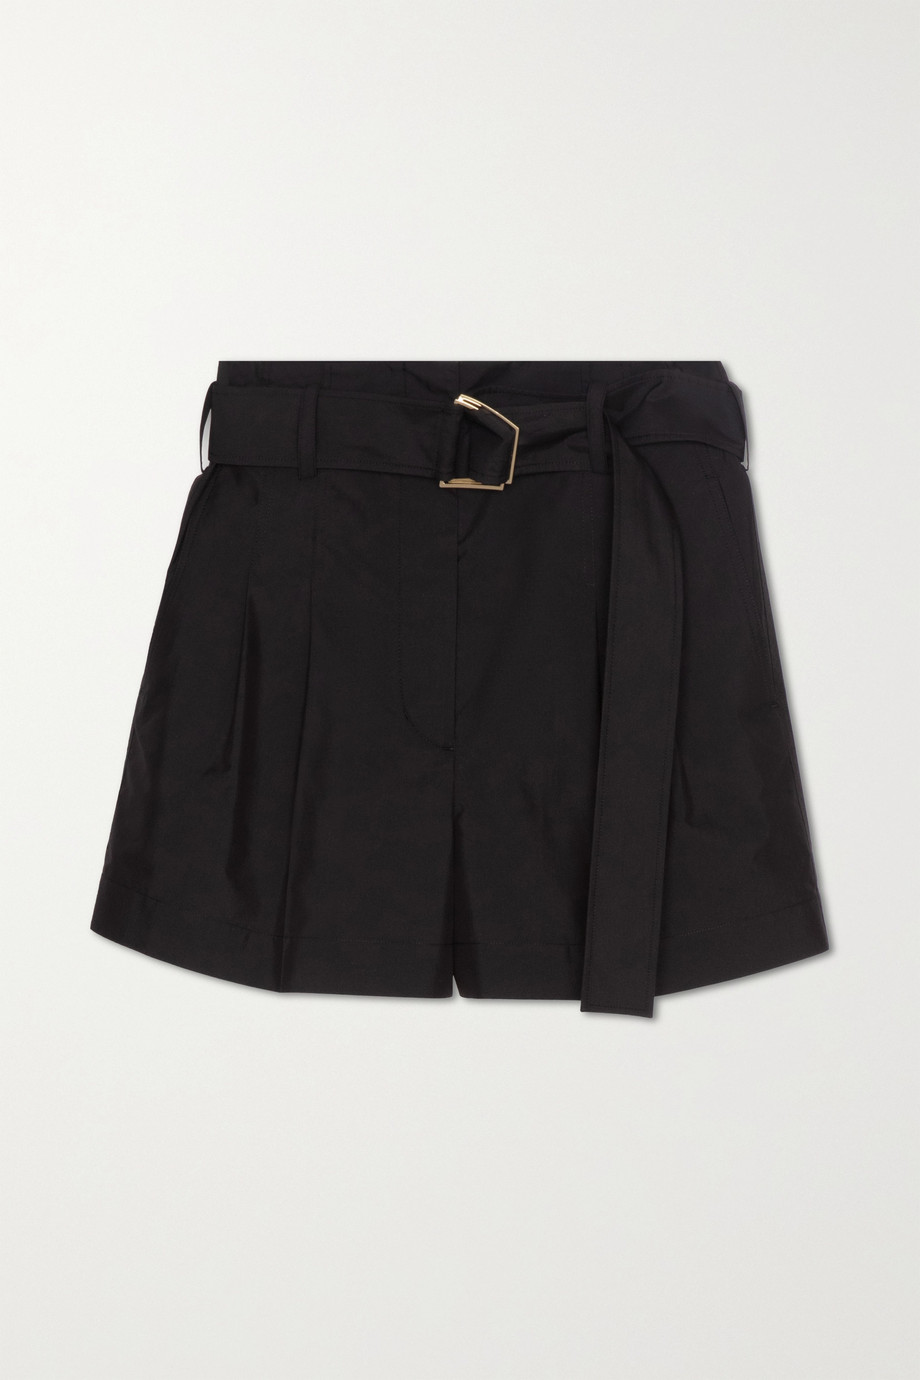 3.1 Phillip Lim Belted pleated cotton-blend shorts